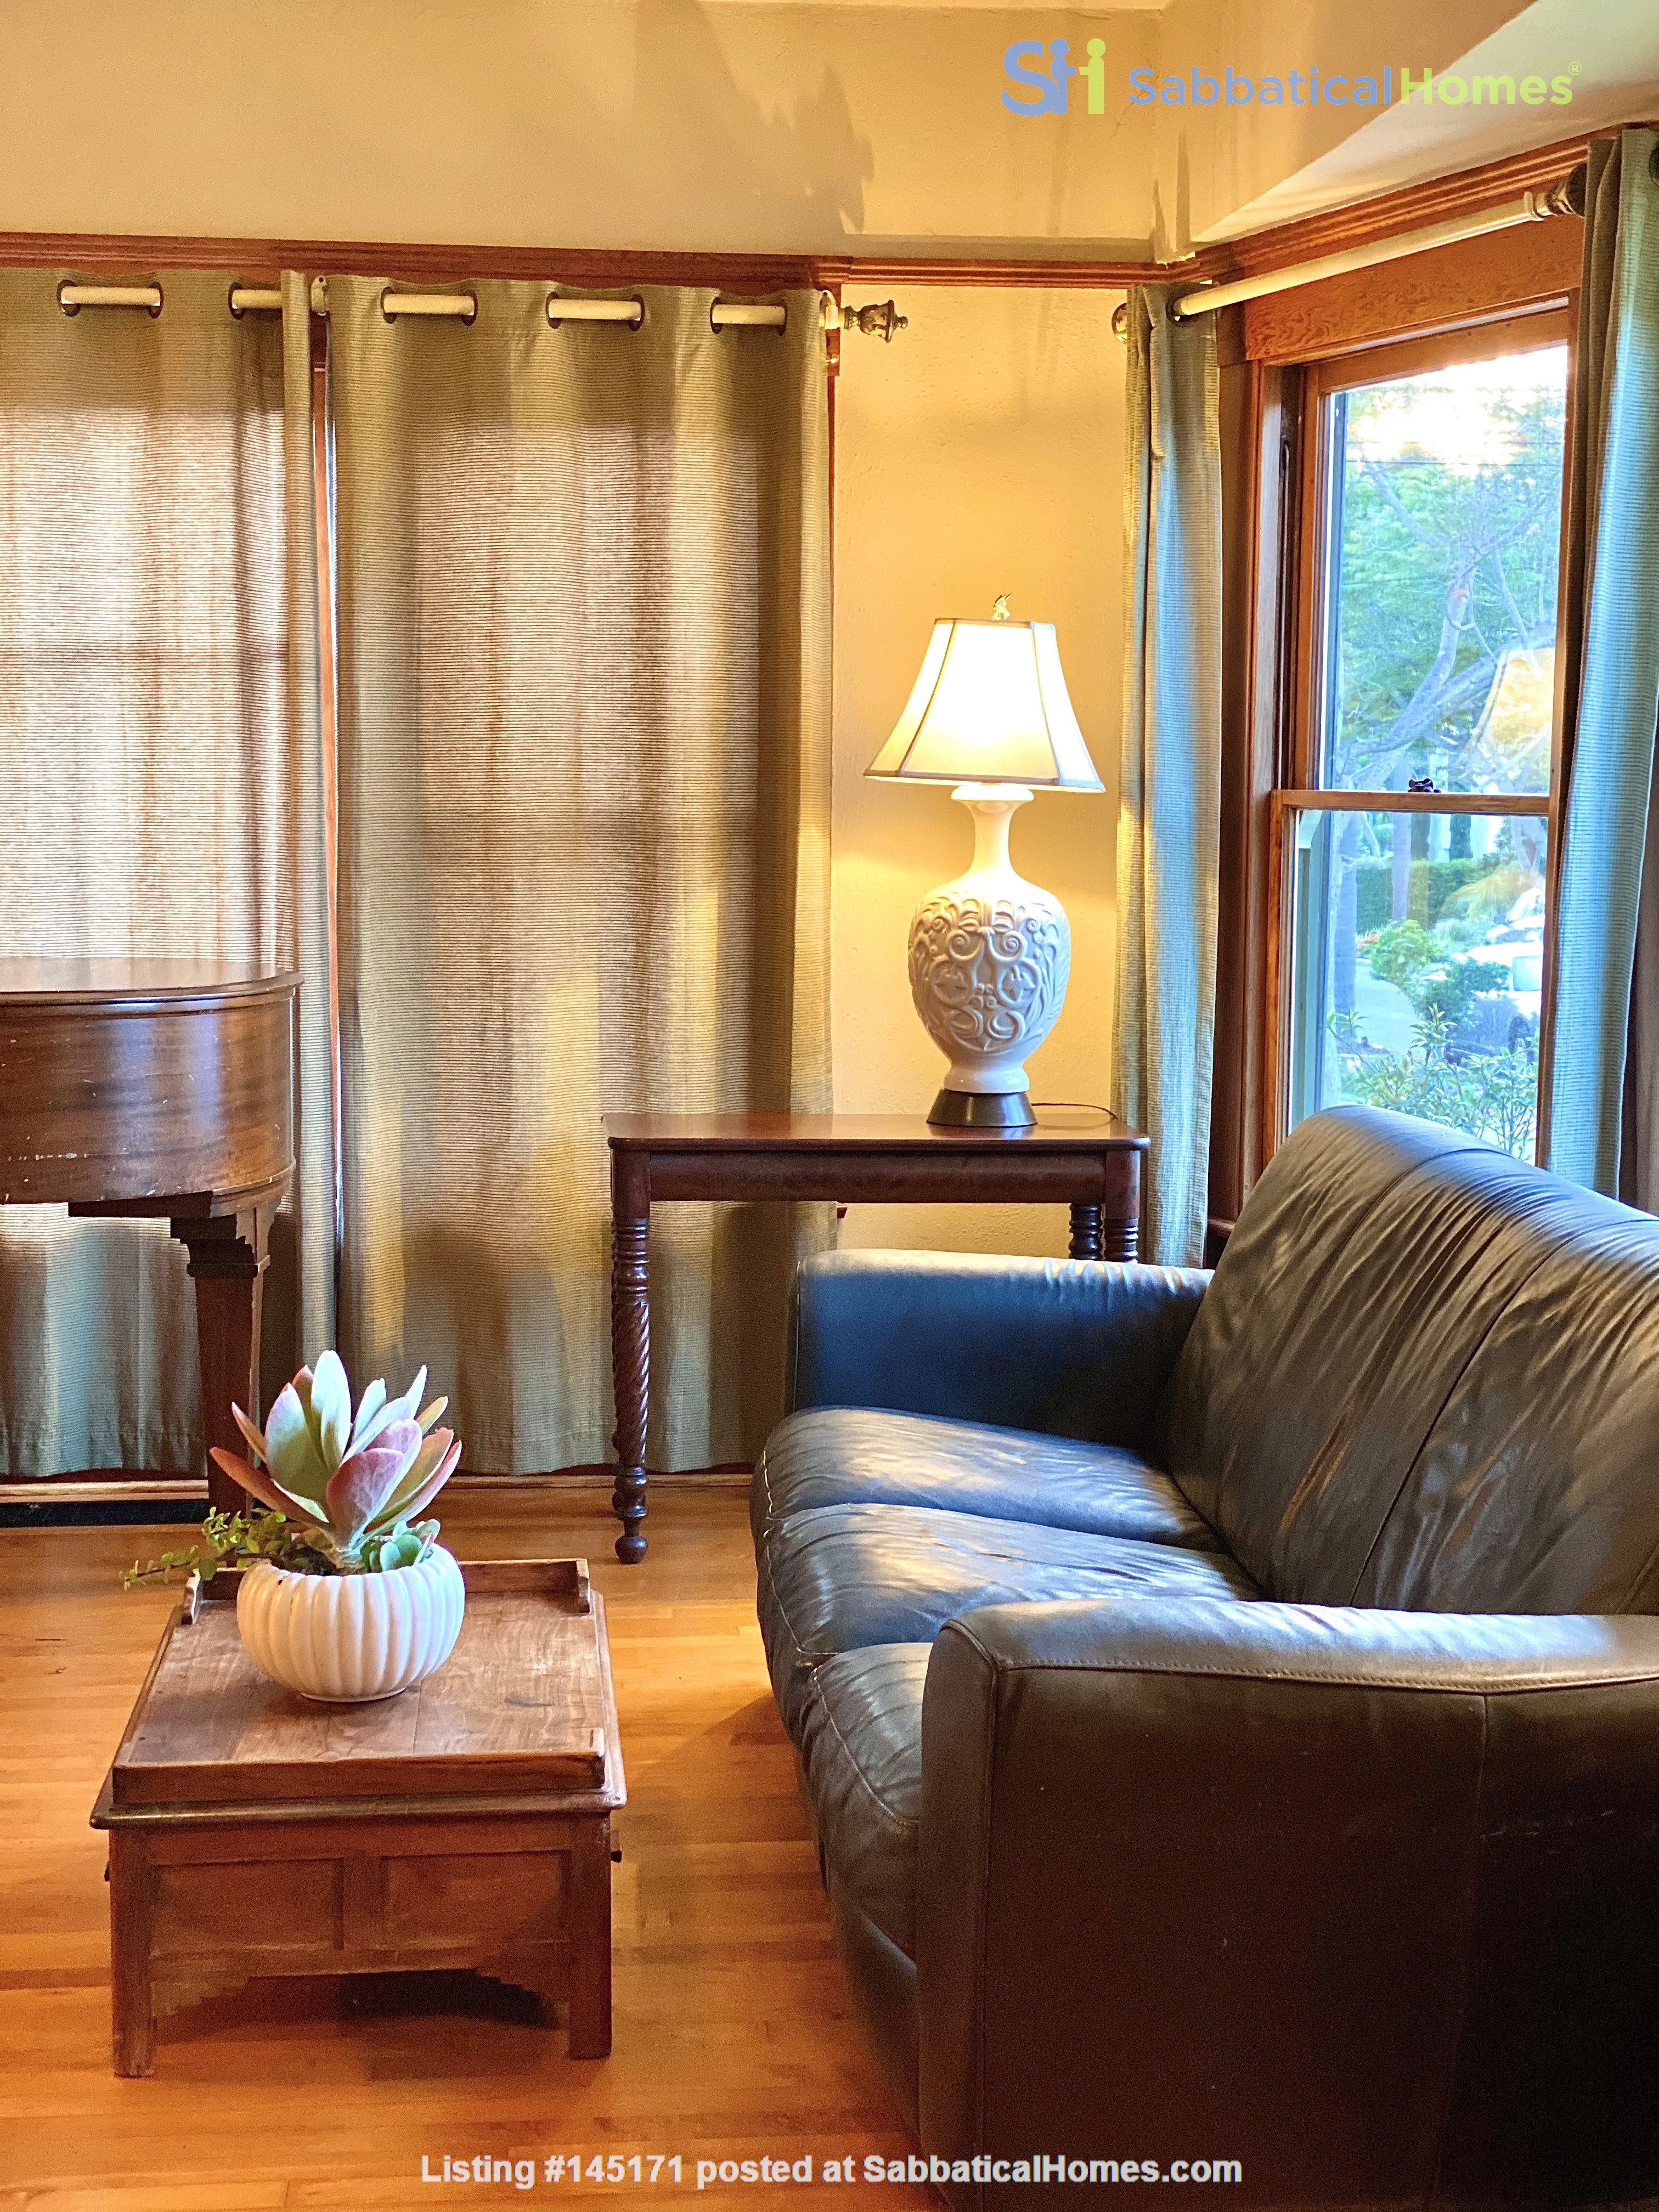 Lovely Craftsman home in historic neighborhood near beaches and downtown! Home Rental in San Diego, California, United States 5